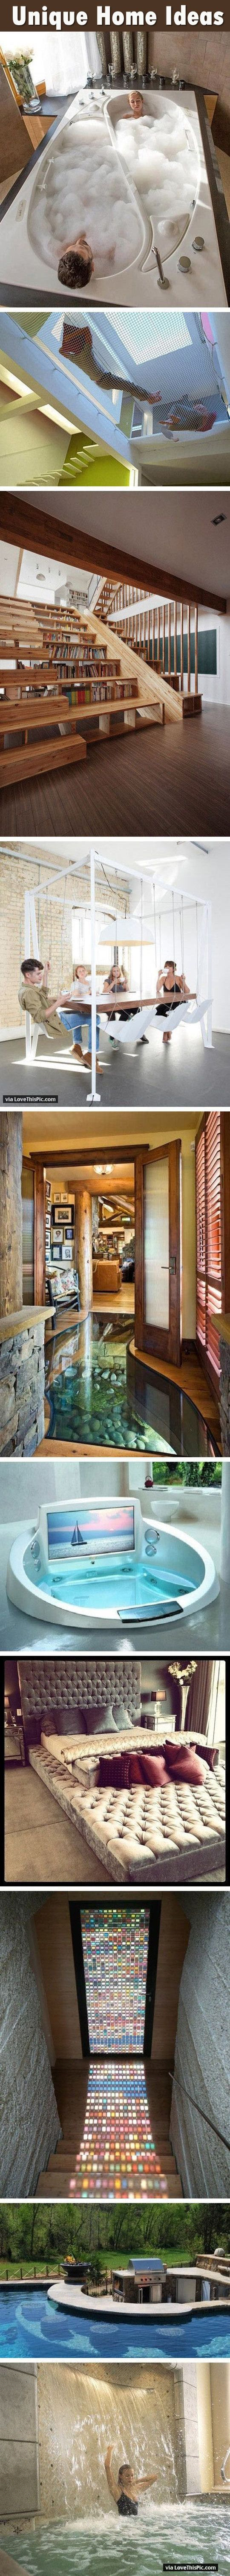 Unique Home Ideas Pictures, Photos, and Images for Facebook, Tumblr, Pinterest, and Twitter